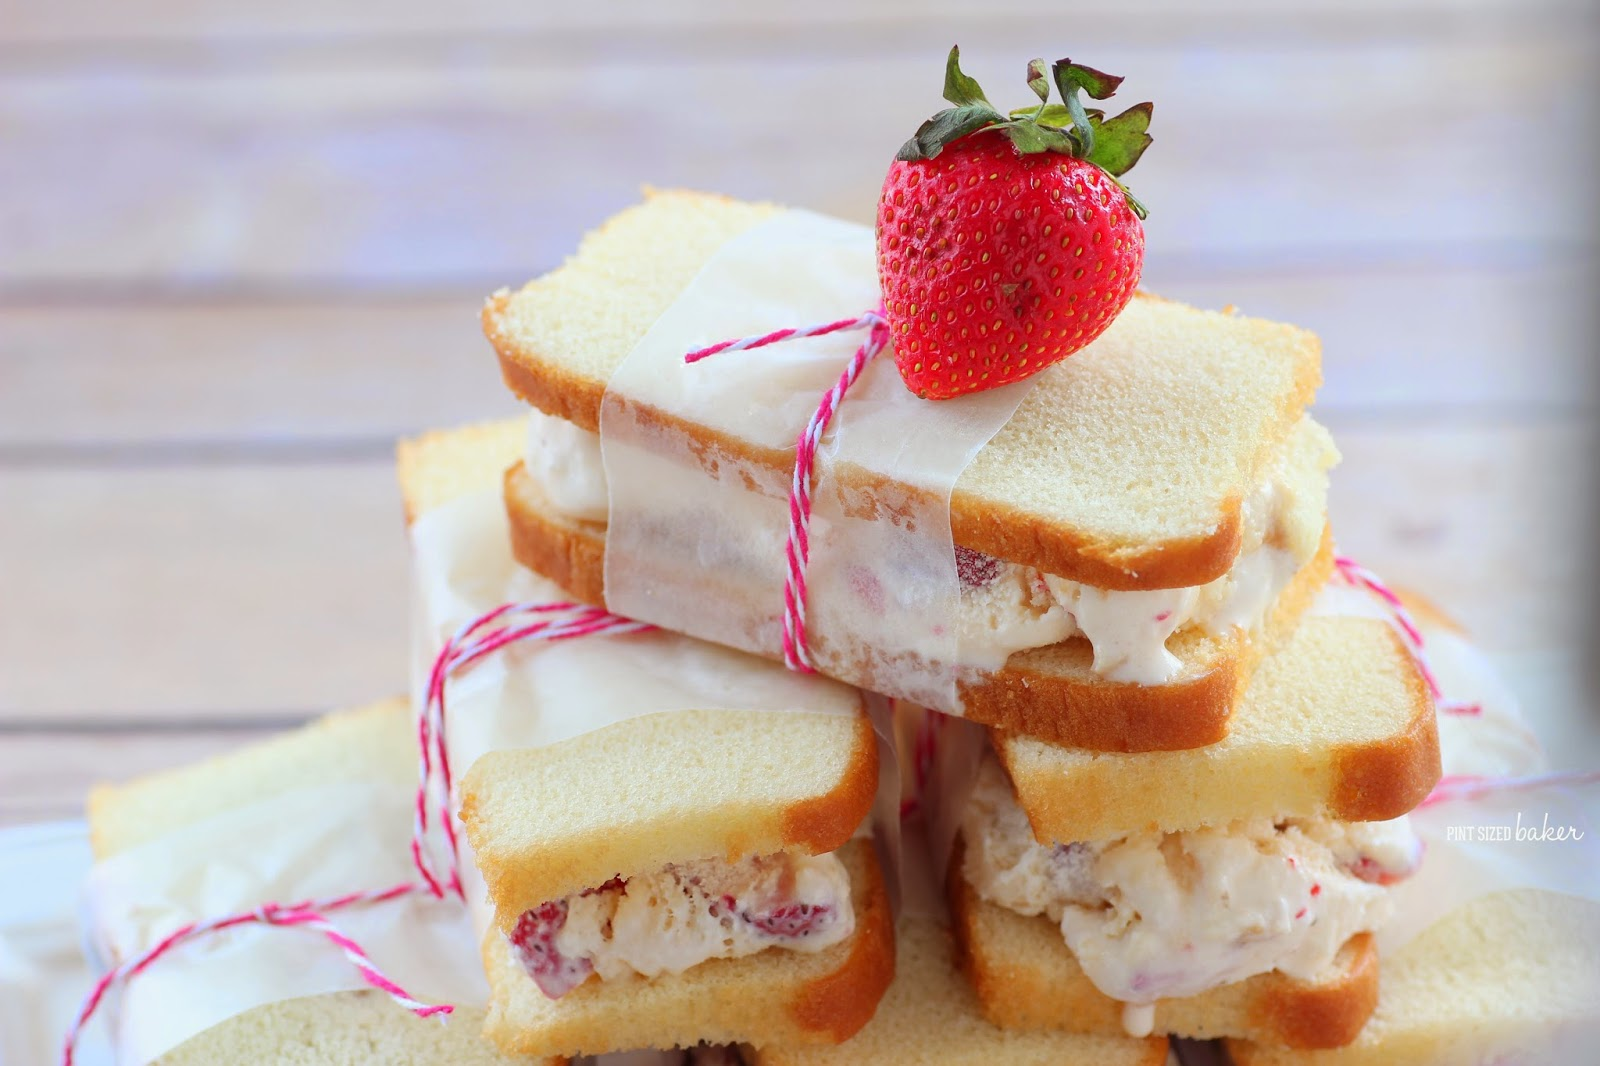 Strawberry Shortcake Ice Cream Sandwiches - Pint Sized Baker